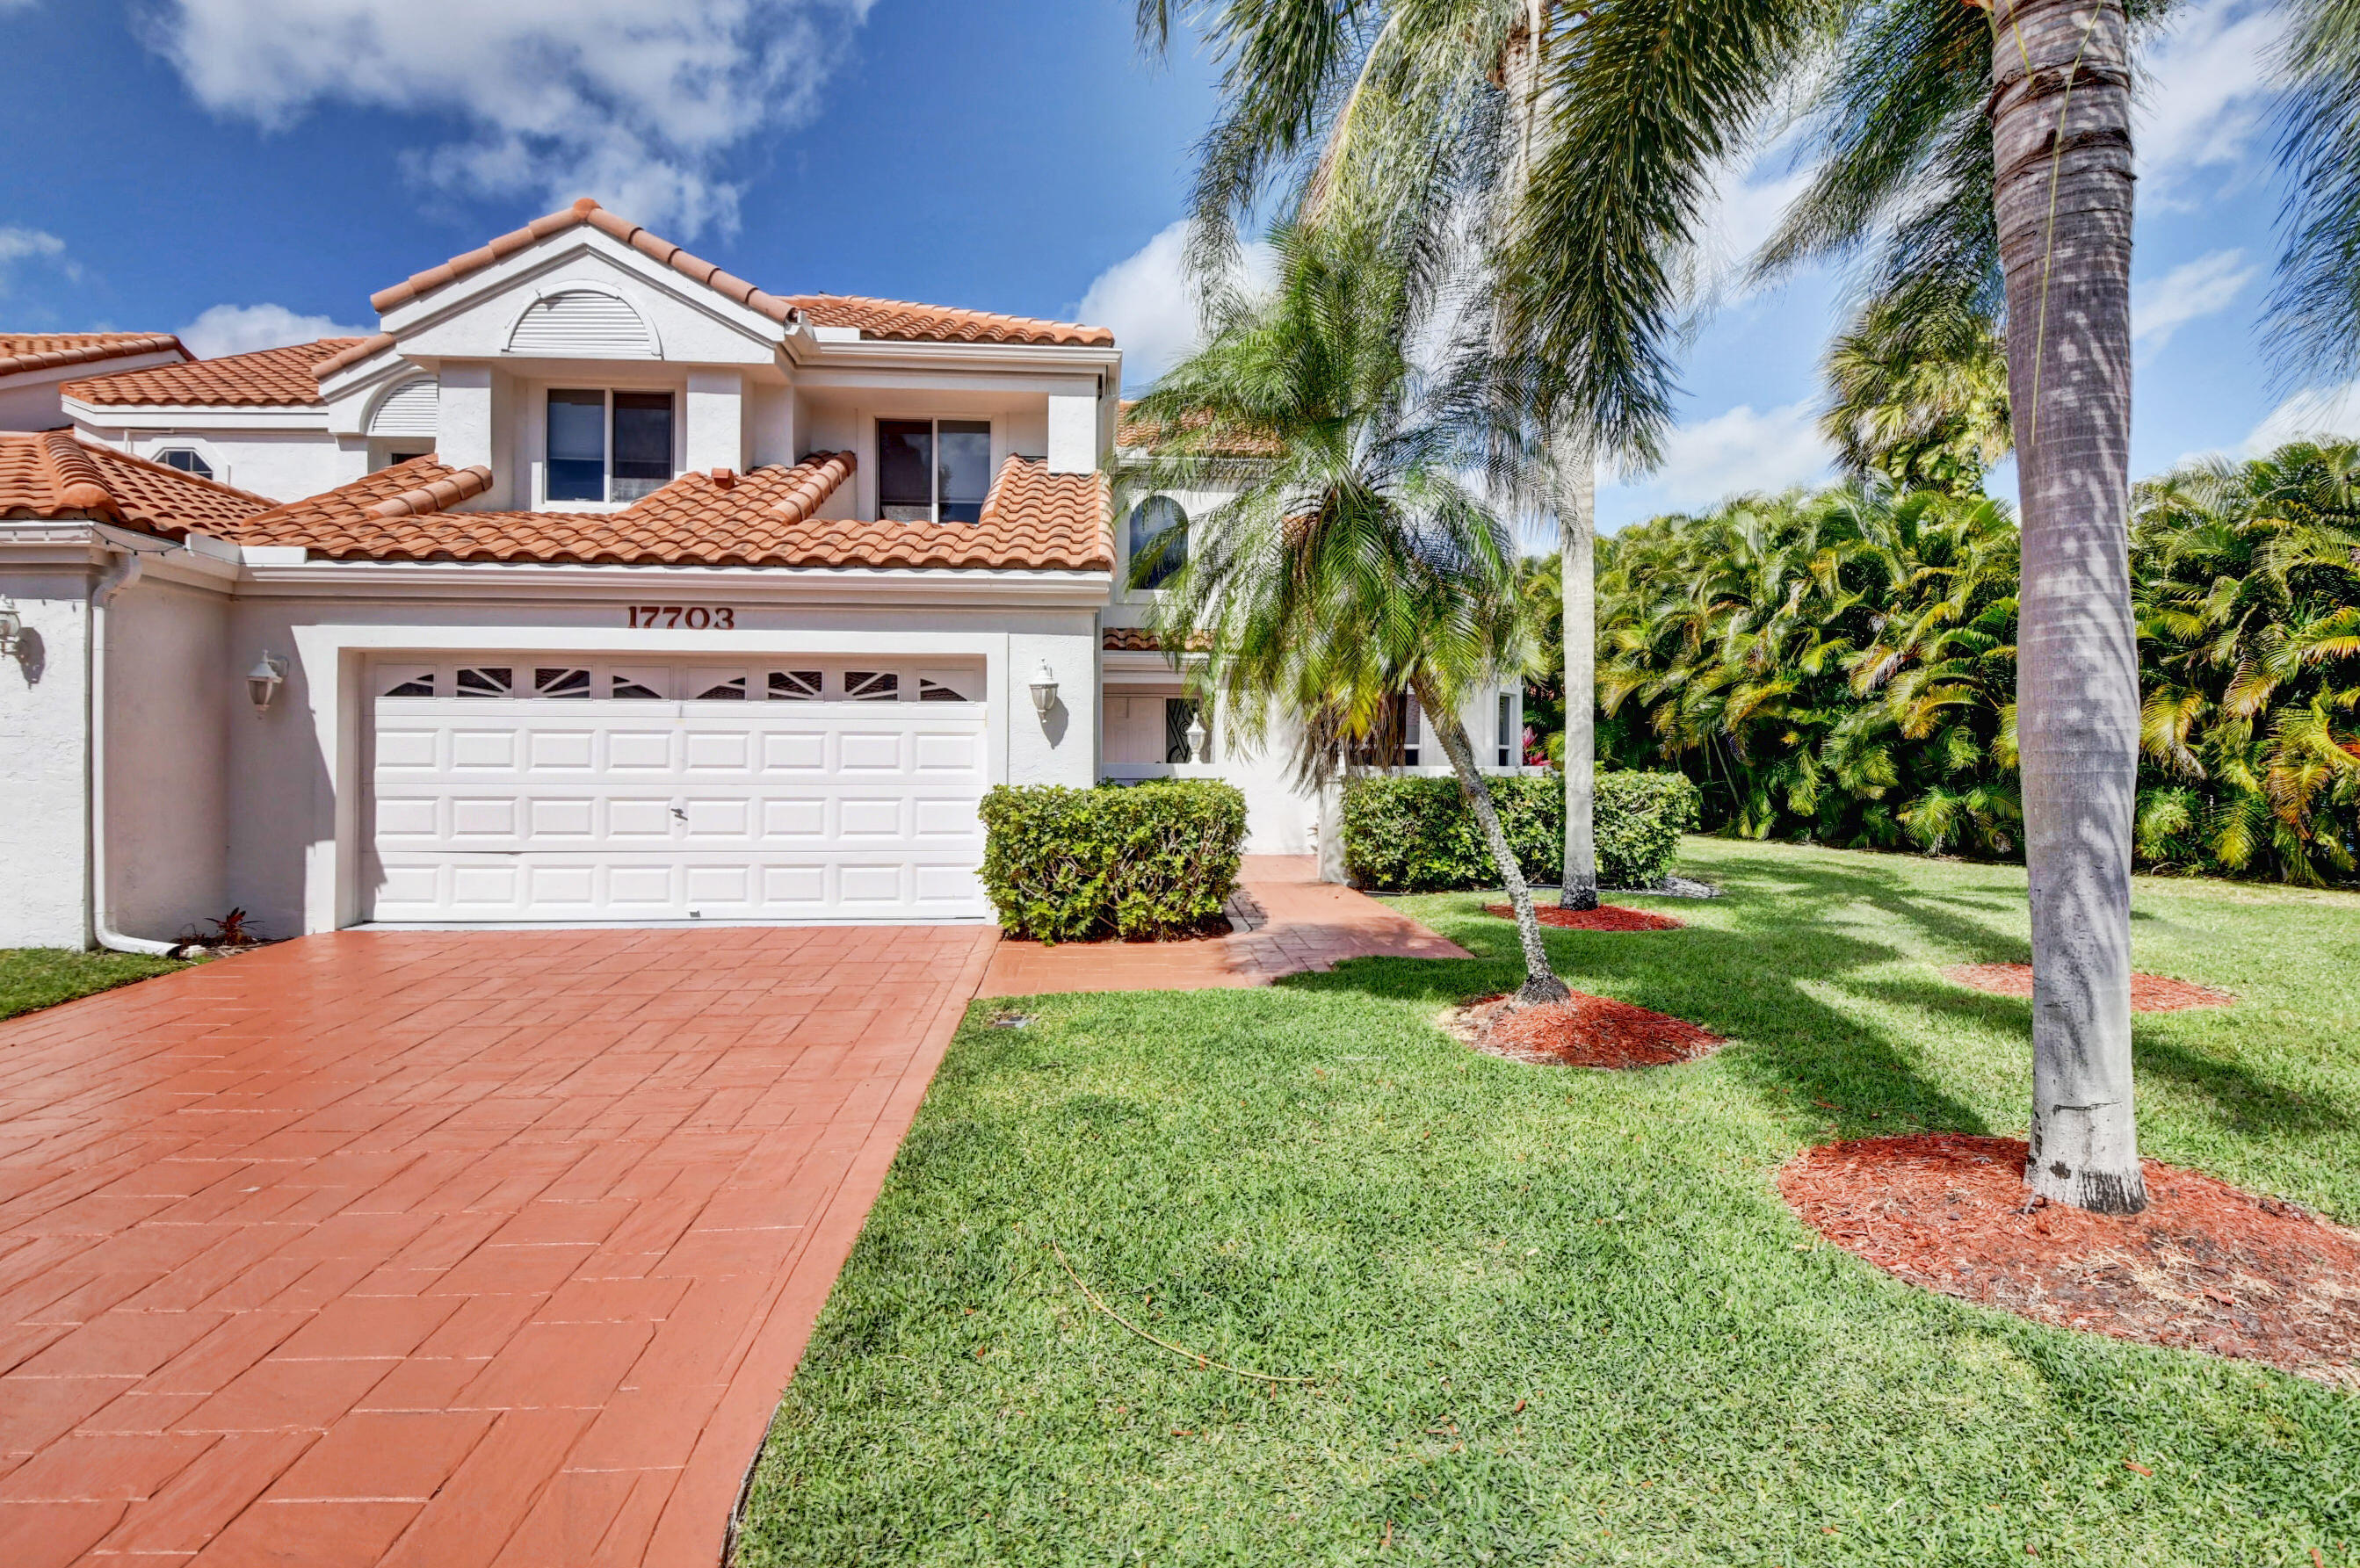 Home for sale in CANDLEWOOD Boca Raton Florida